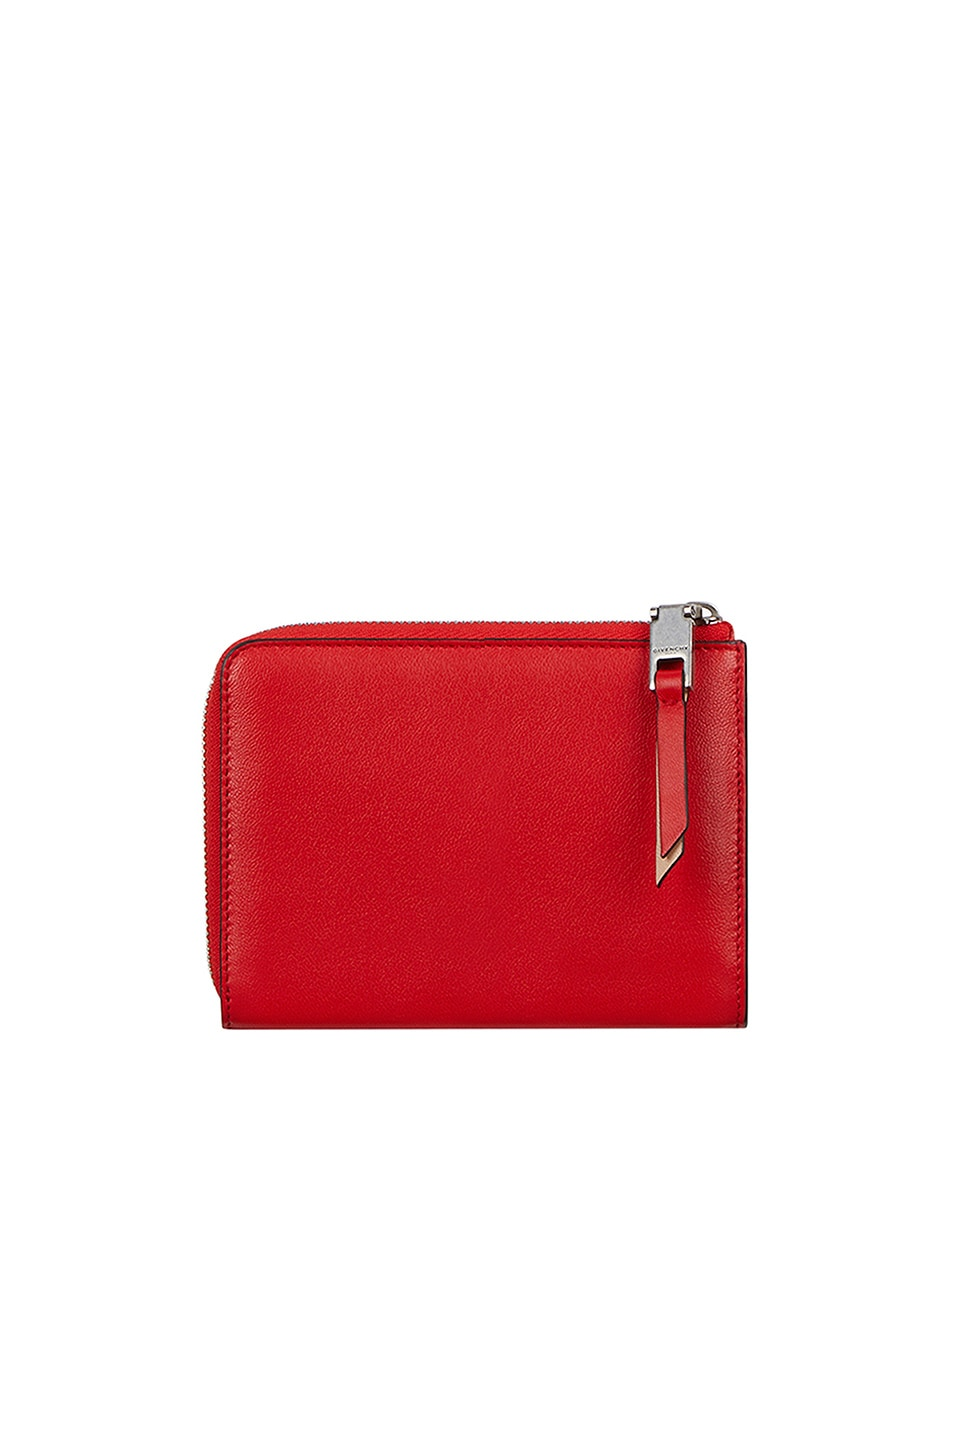 Image 2 of Givenchy Medium Emblem Zip Wallet in Poppy Red